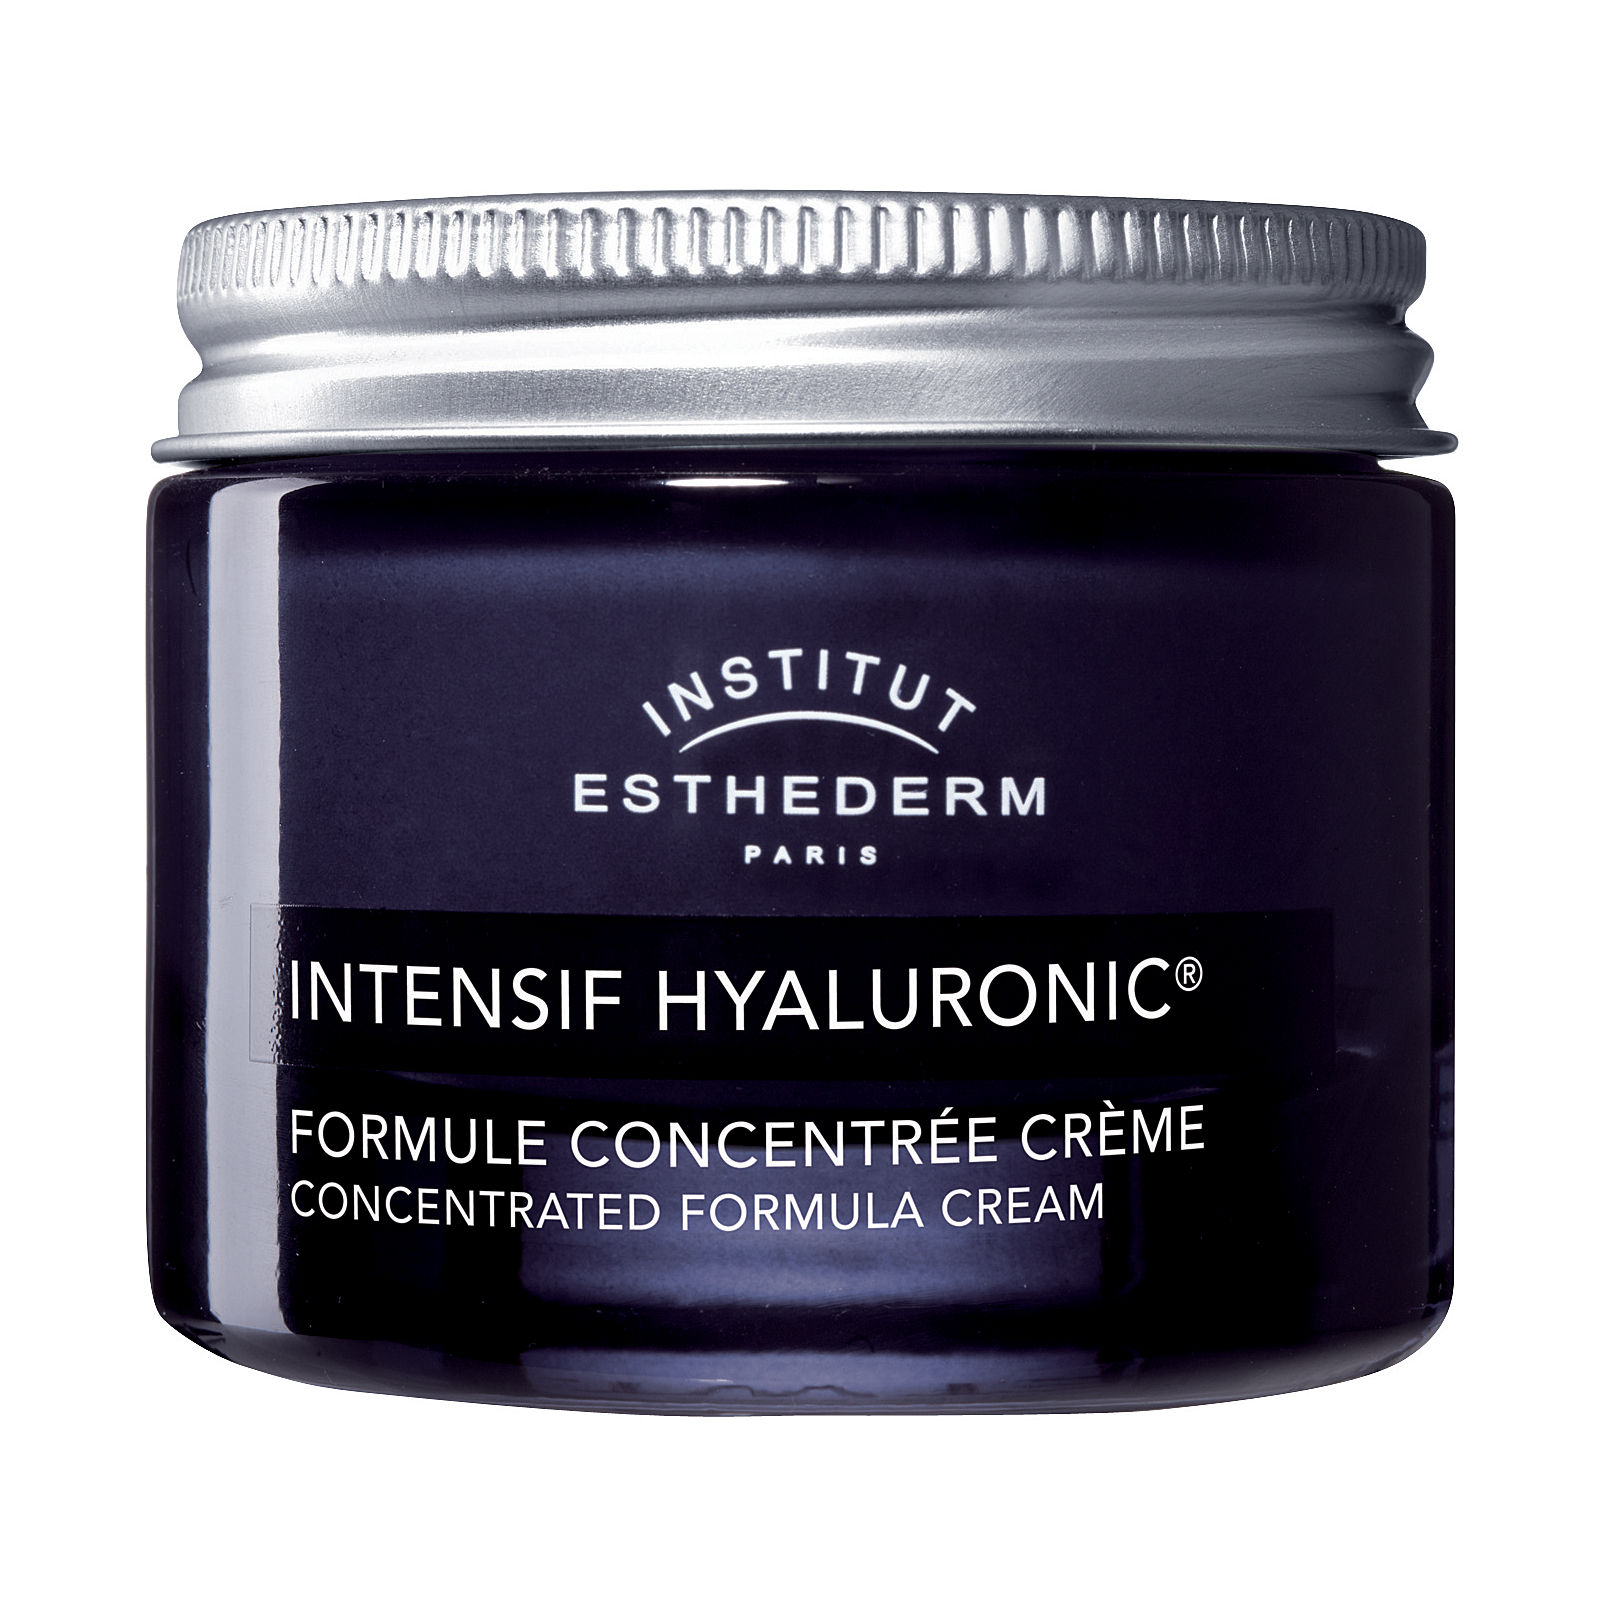 Institut Esthederm Крем Intensif Hyaluronic Concentrated Cream Интенсив Гиалуроник, 50 мл